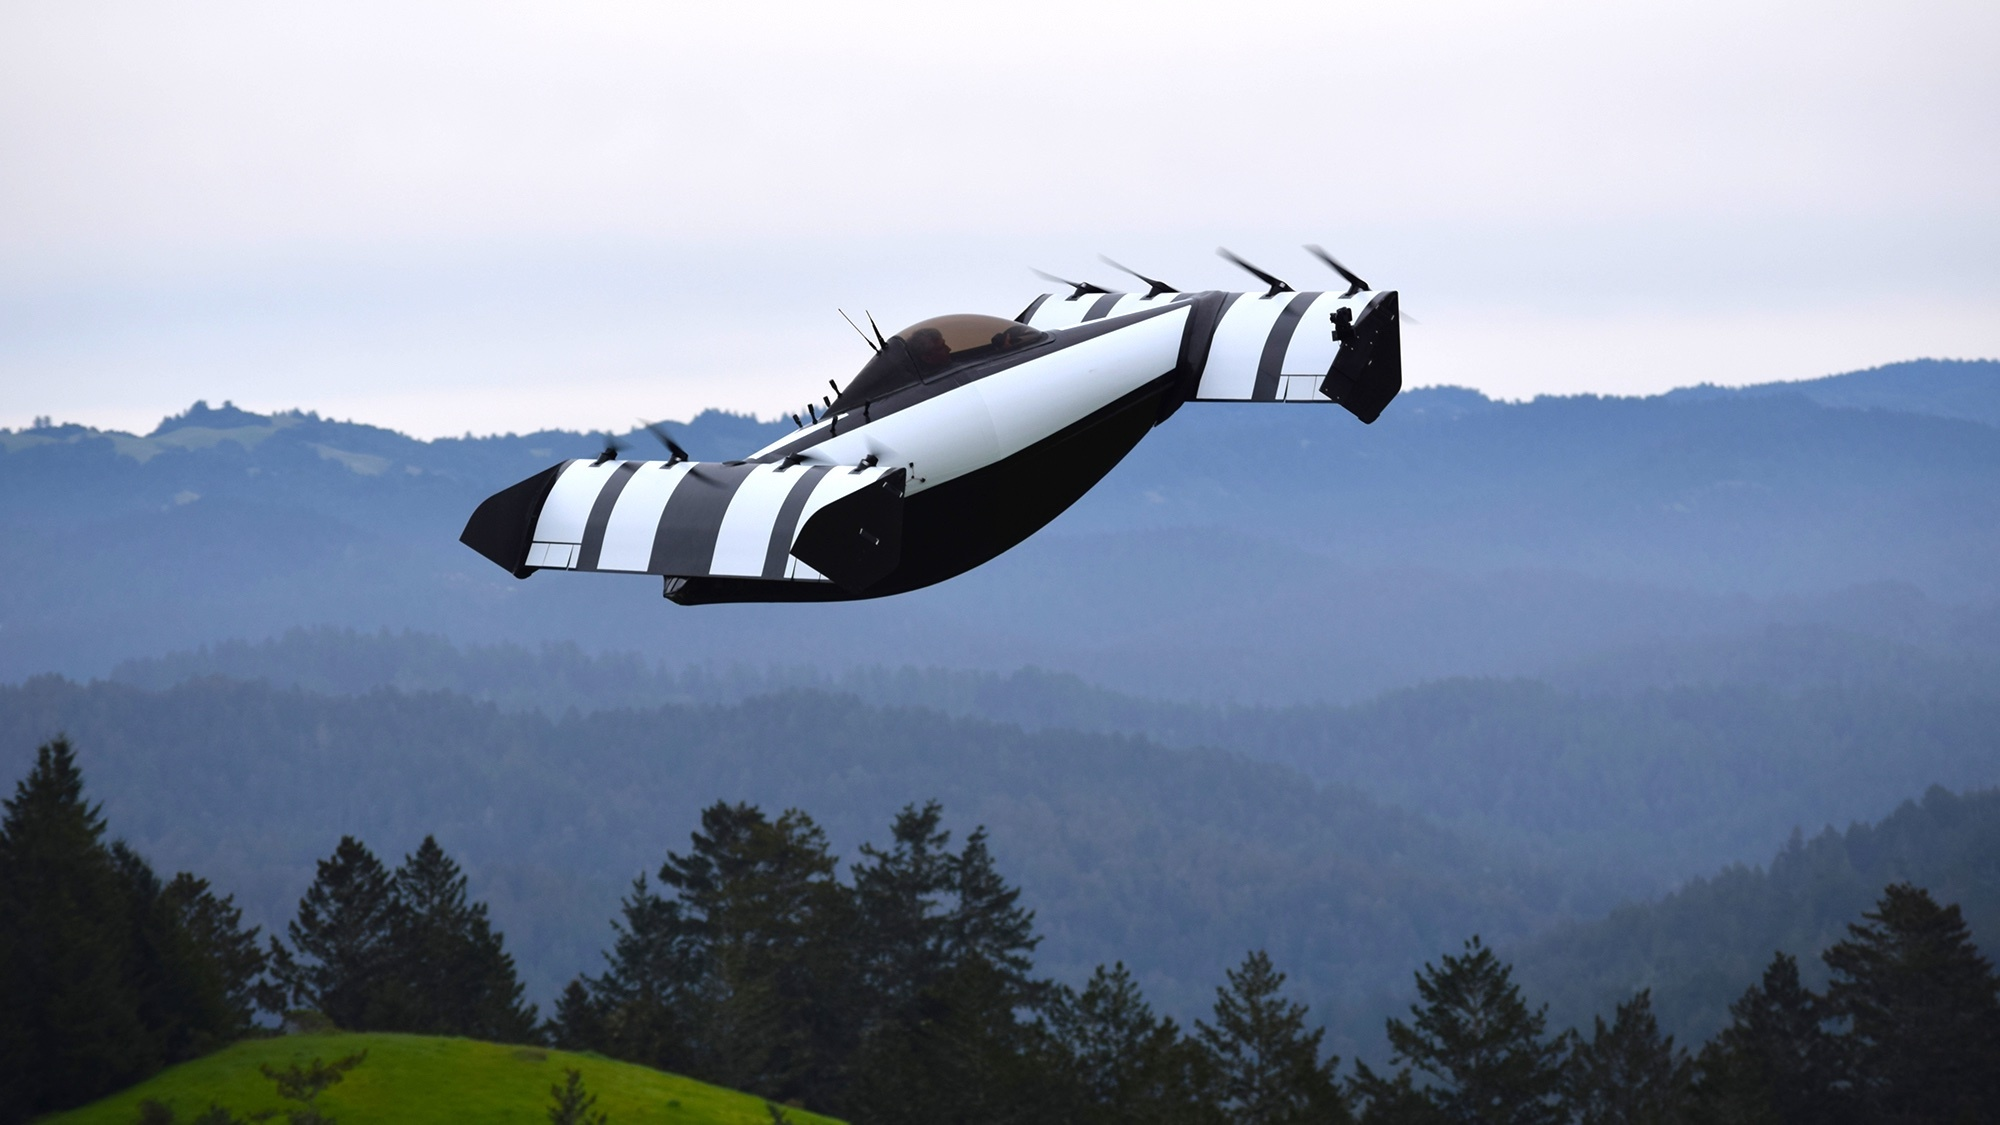 BlackFly 'flying car' to hit the market in 2019 for the price of an SUV